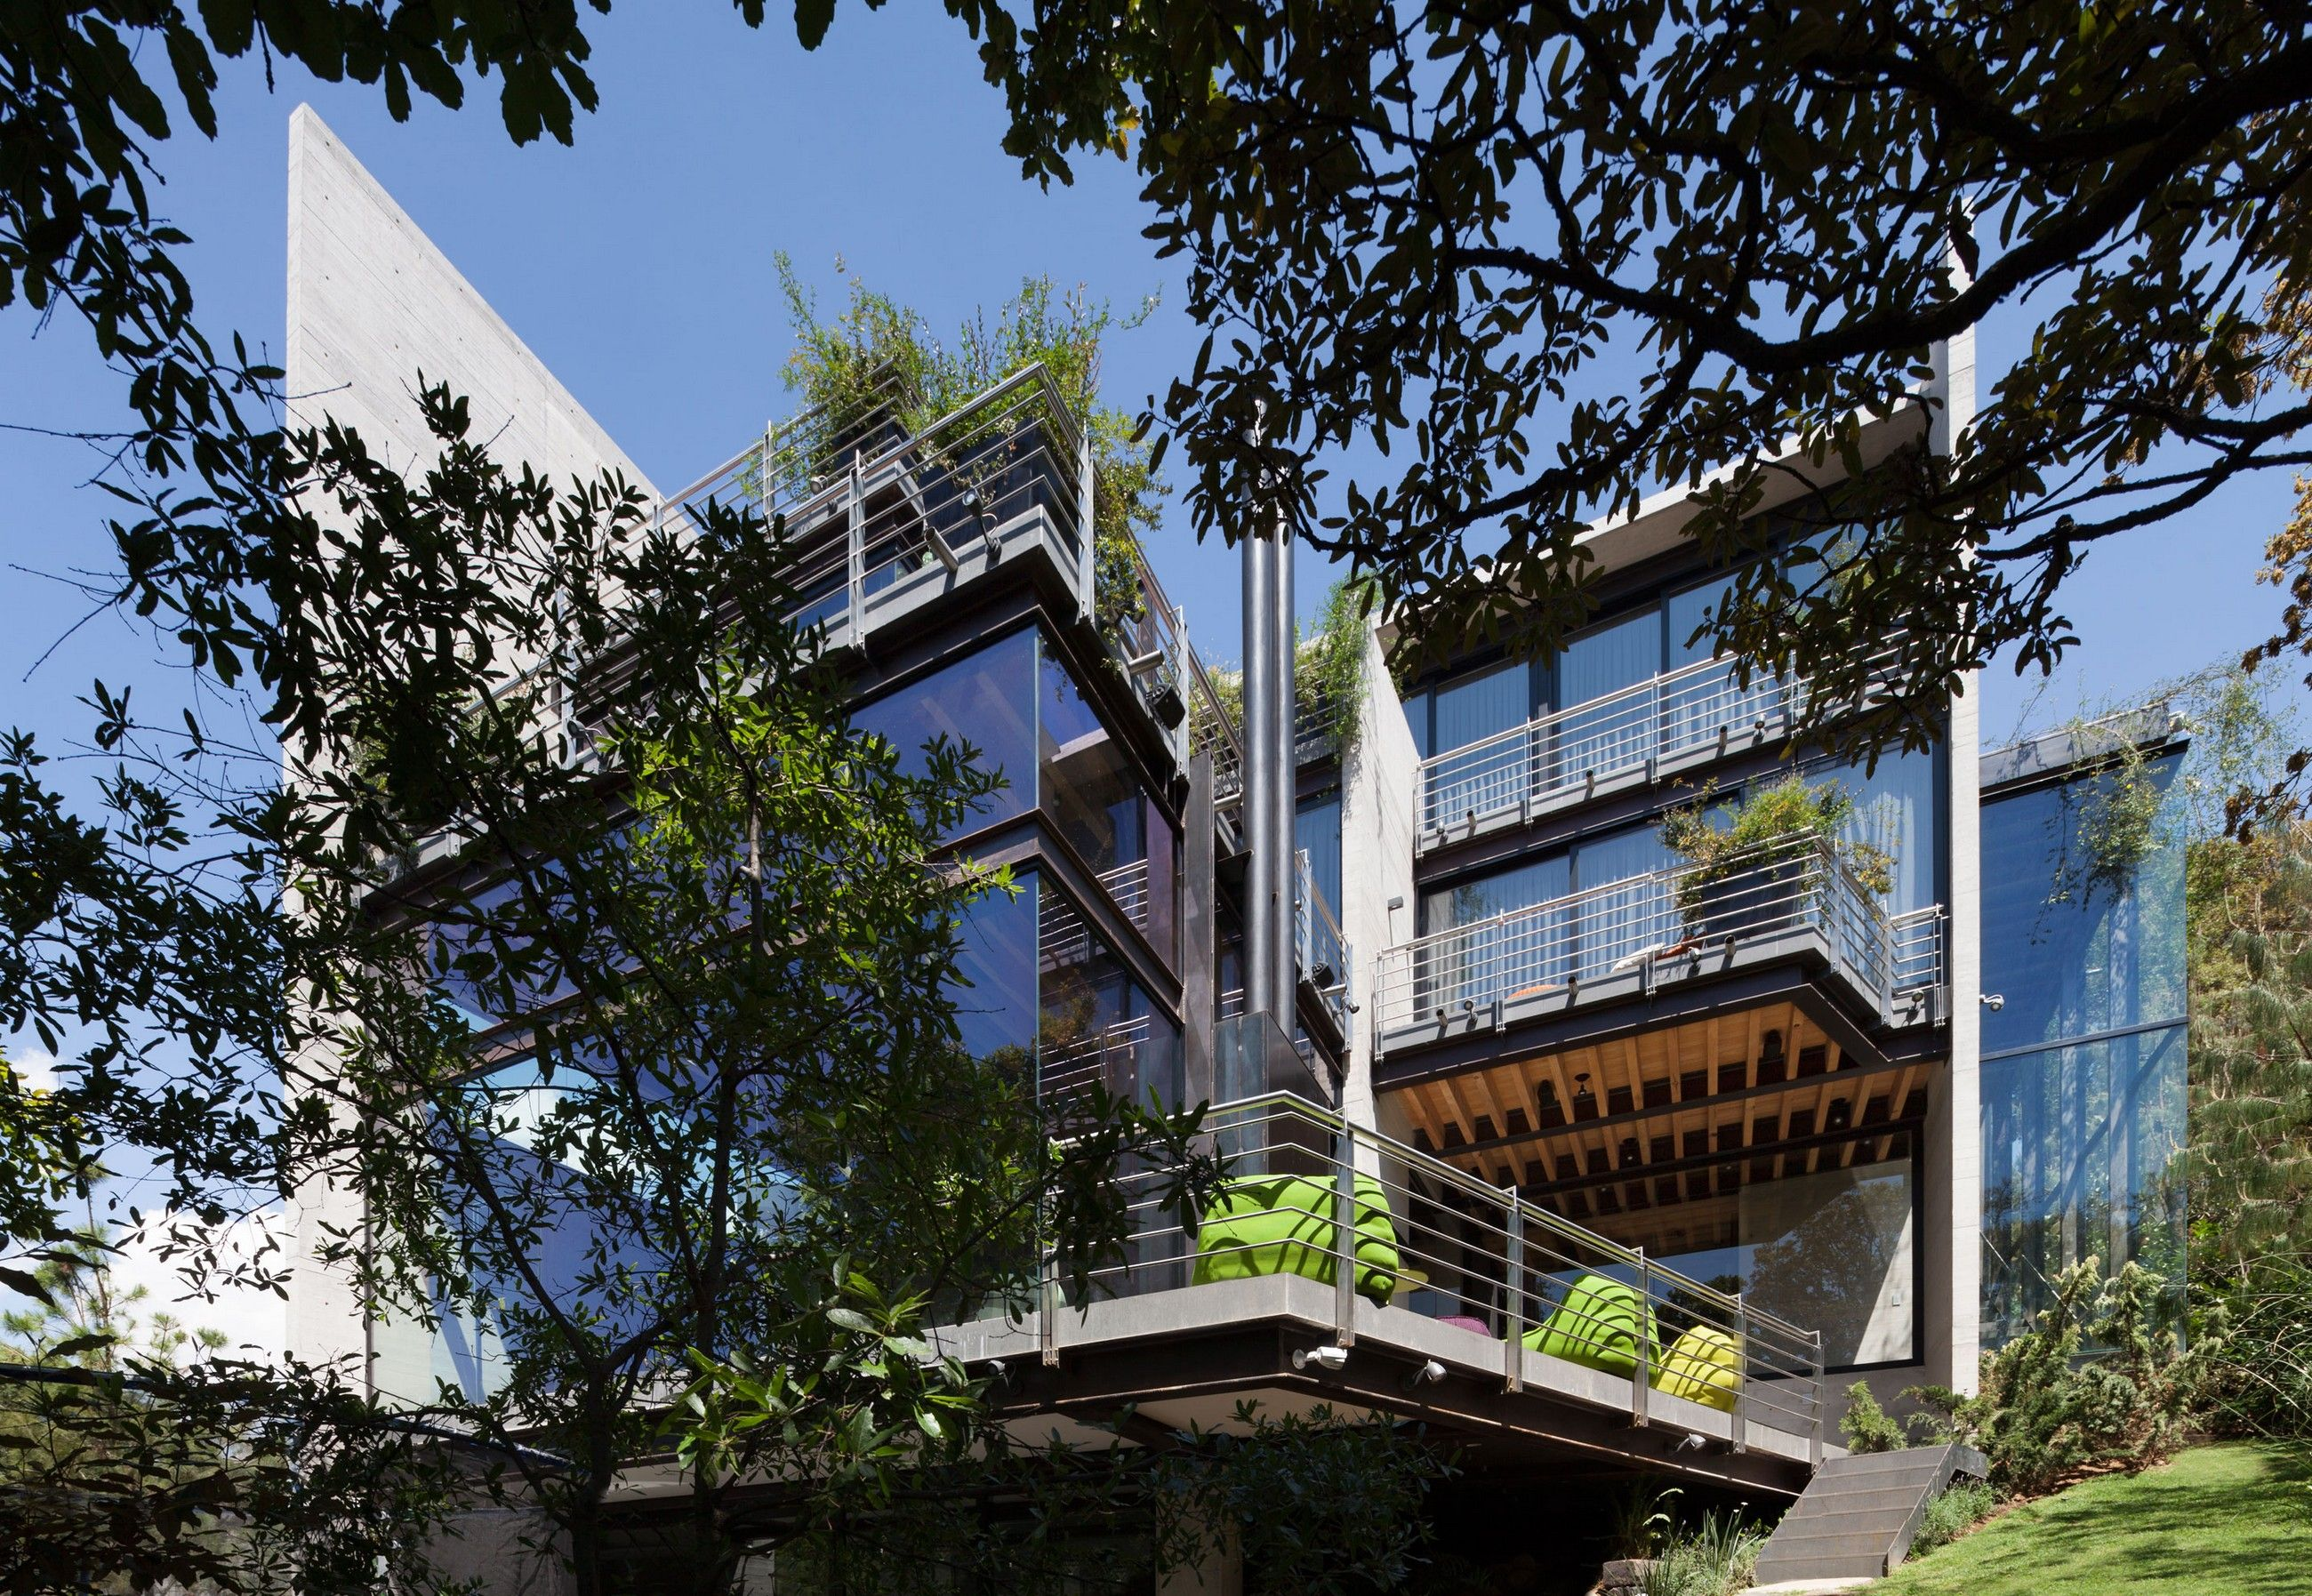 The house consists of two very geometric separate volumes of concrete, one for services and other for the principal areas of the house. The two bodies are joined using steel bridges with glass floor that do not touch the trees and the forest and seems